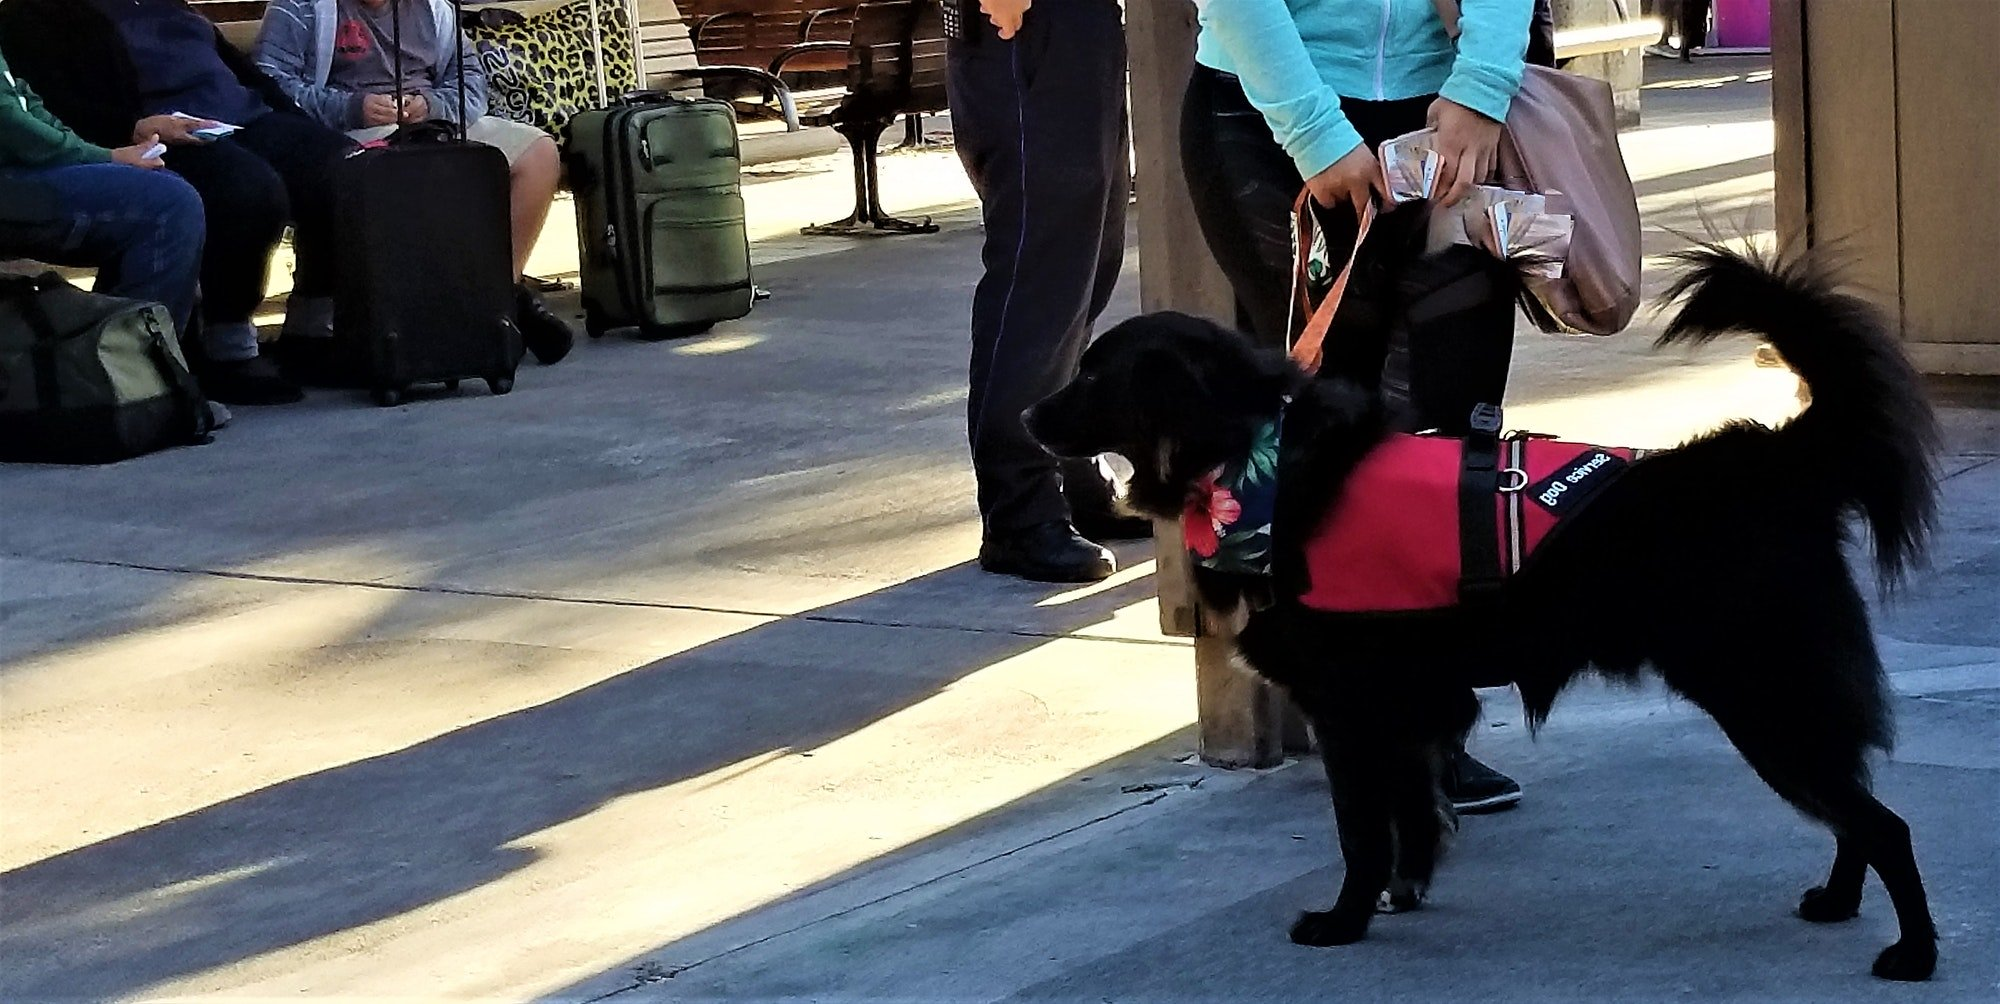 Service Dog Ready to Board the Airplane